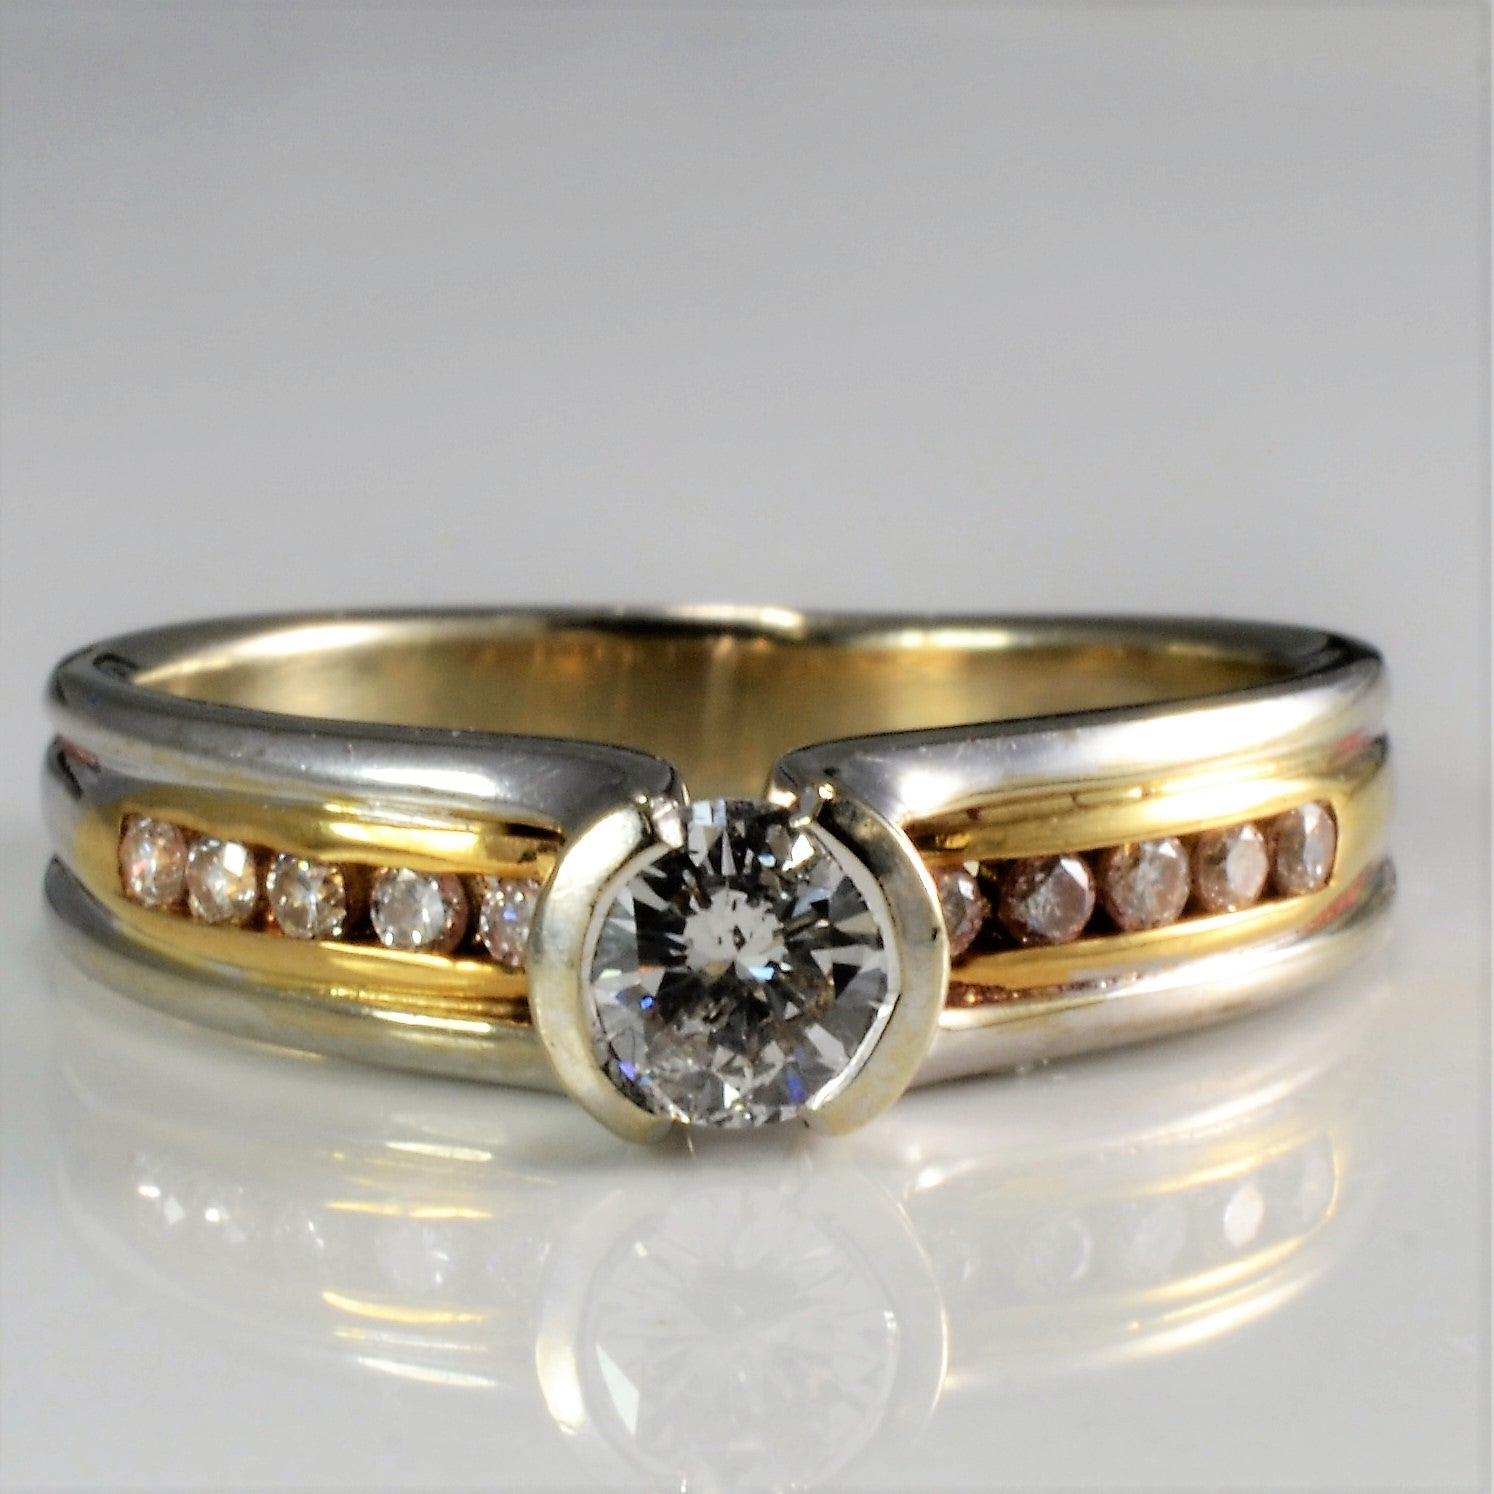 Two Tone Gold Channel Diamond Engagement Ring | 0.50 ctw, SZ 6.25 |